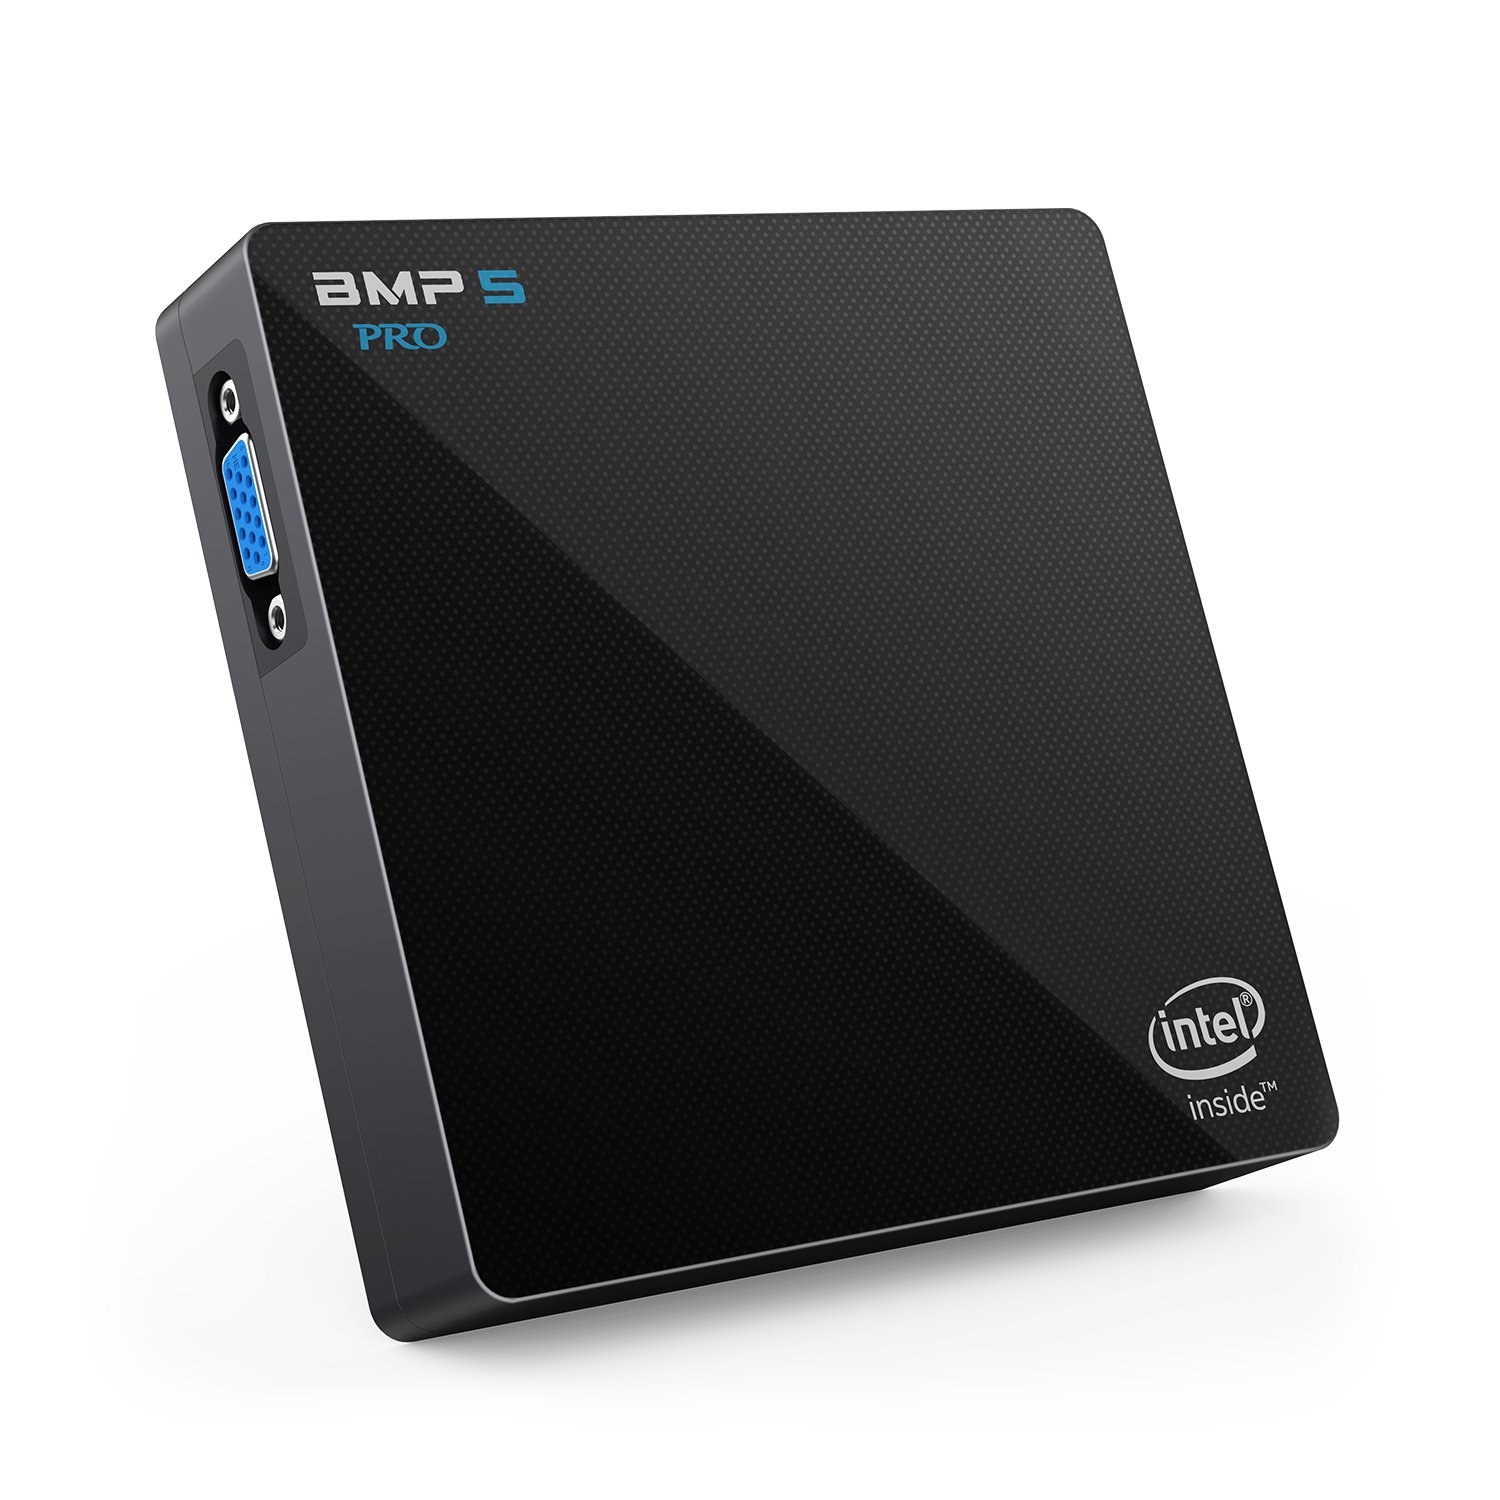 TALLA 4+64G. Bqeel BMP5 Pro Mini PC soporta Windows 10 Home / Procesador Intel Apollo Lake N3450 / 4 GB DDR3 + 64 GB / Intel HD Graphics 500 / 4K / 1000 Mbps LAN / Dual-Band WiFi con Bluetooth 4.0 / USB 3.0